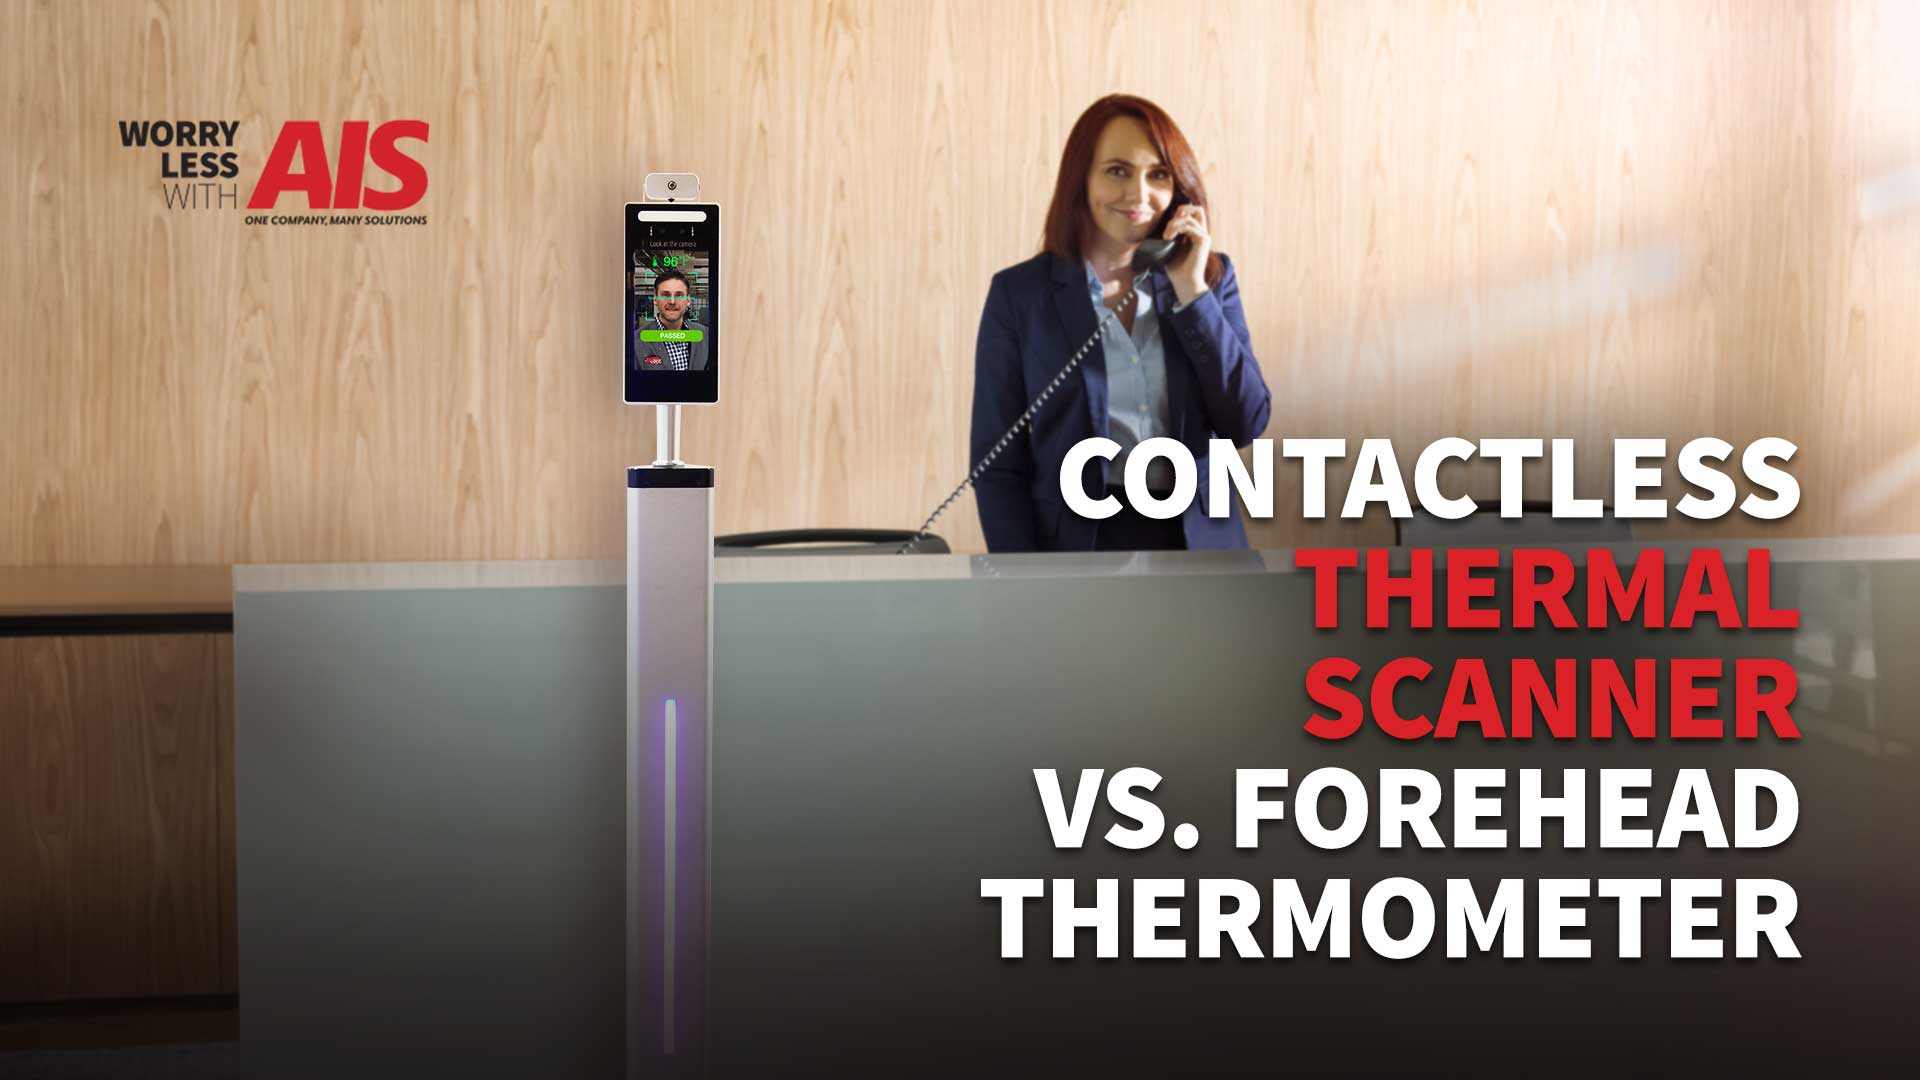 temperature-scanners-comparison-contactless-thermal-scanner-vs-forehead-thermometer